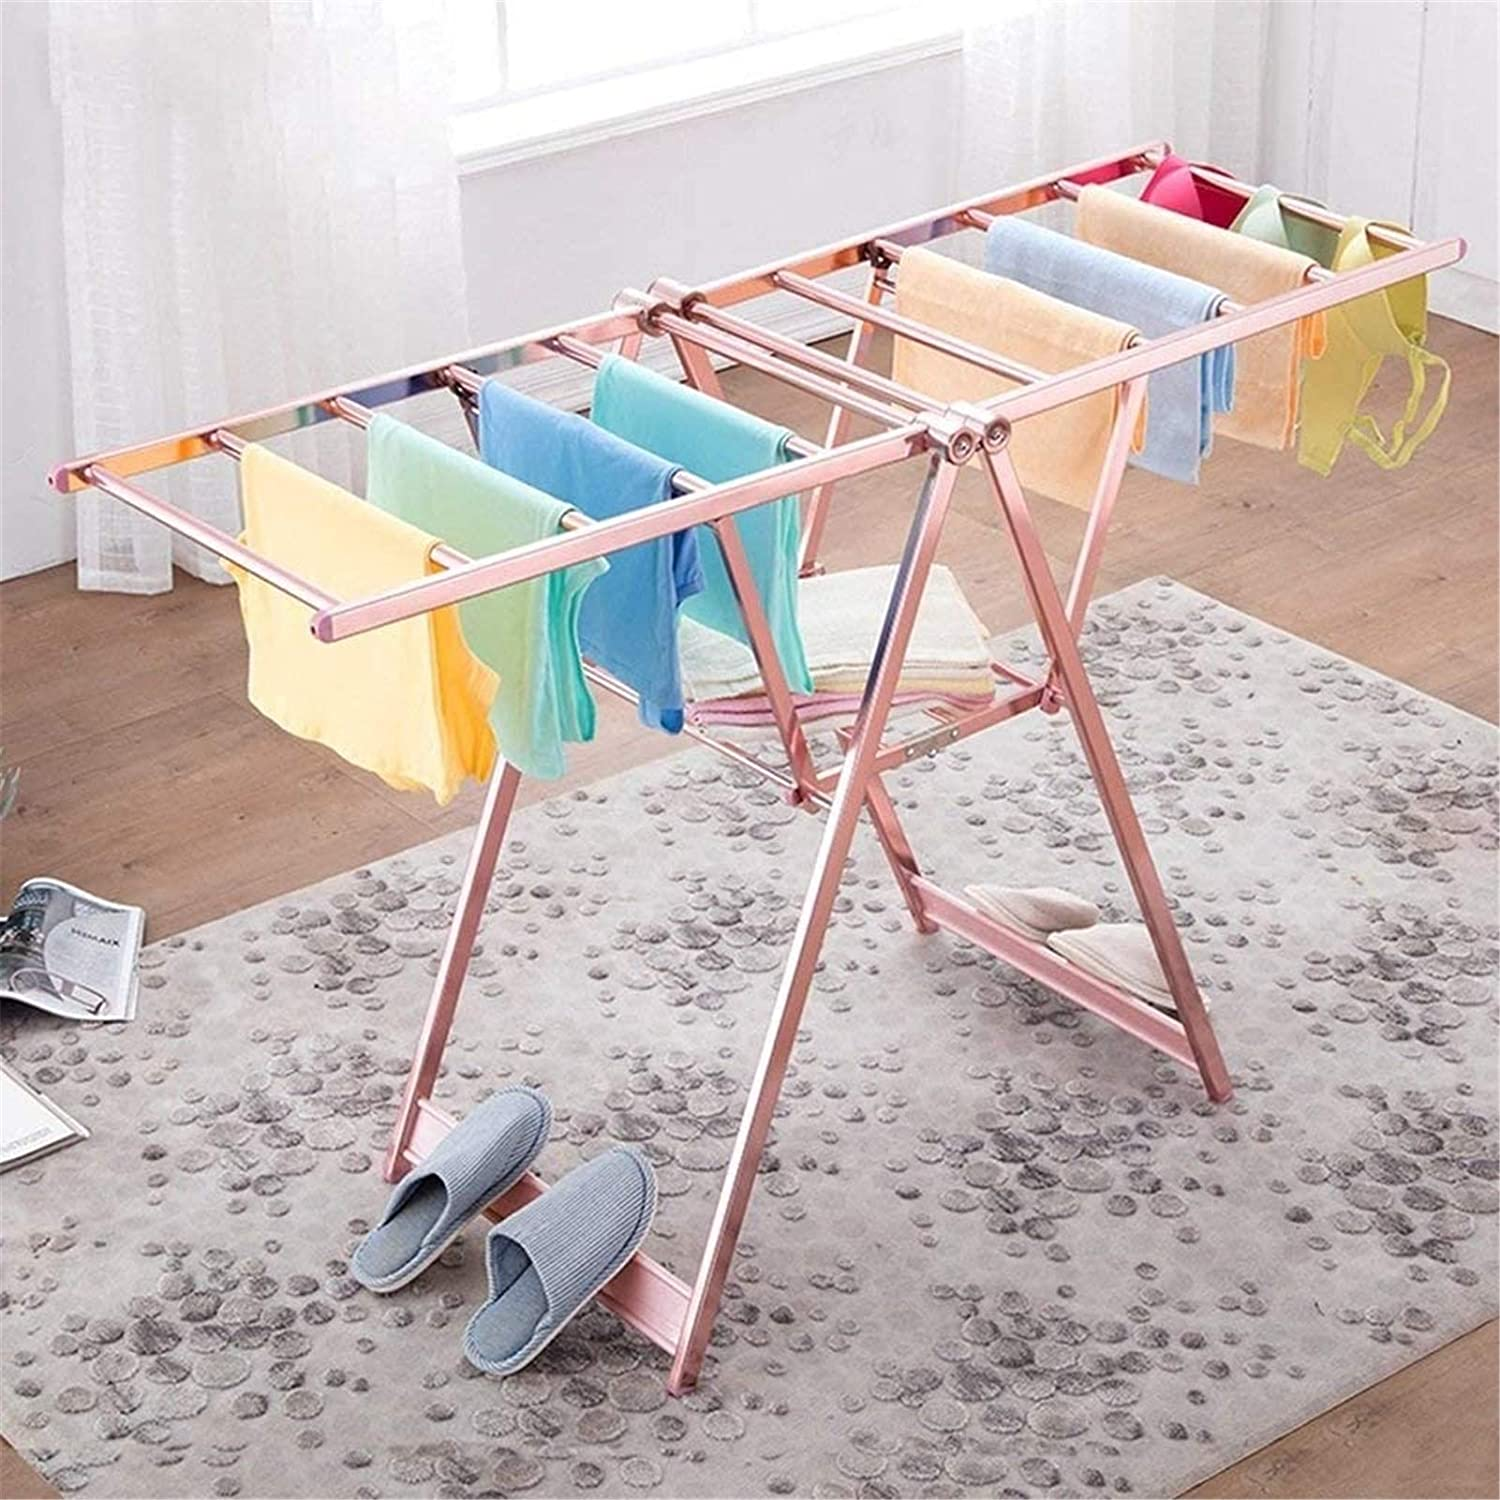 TUHFG Electric Indefinitely Heated Clothes Airer Dryer Sale item Racks A Drying